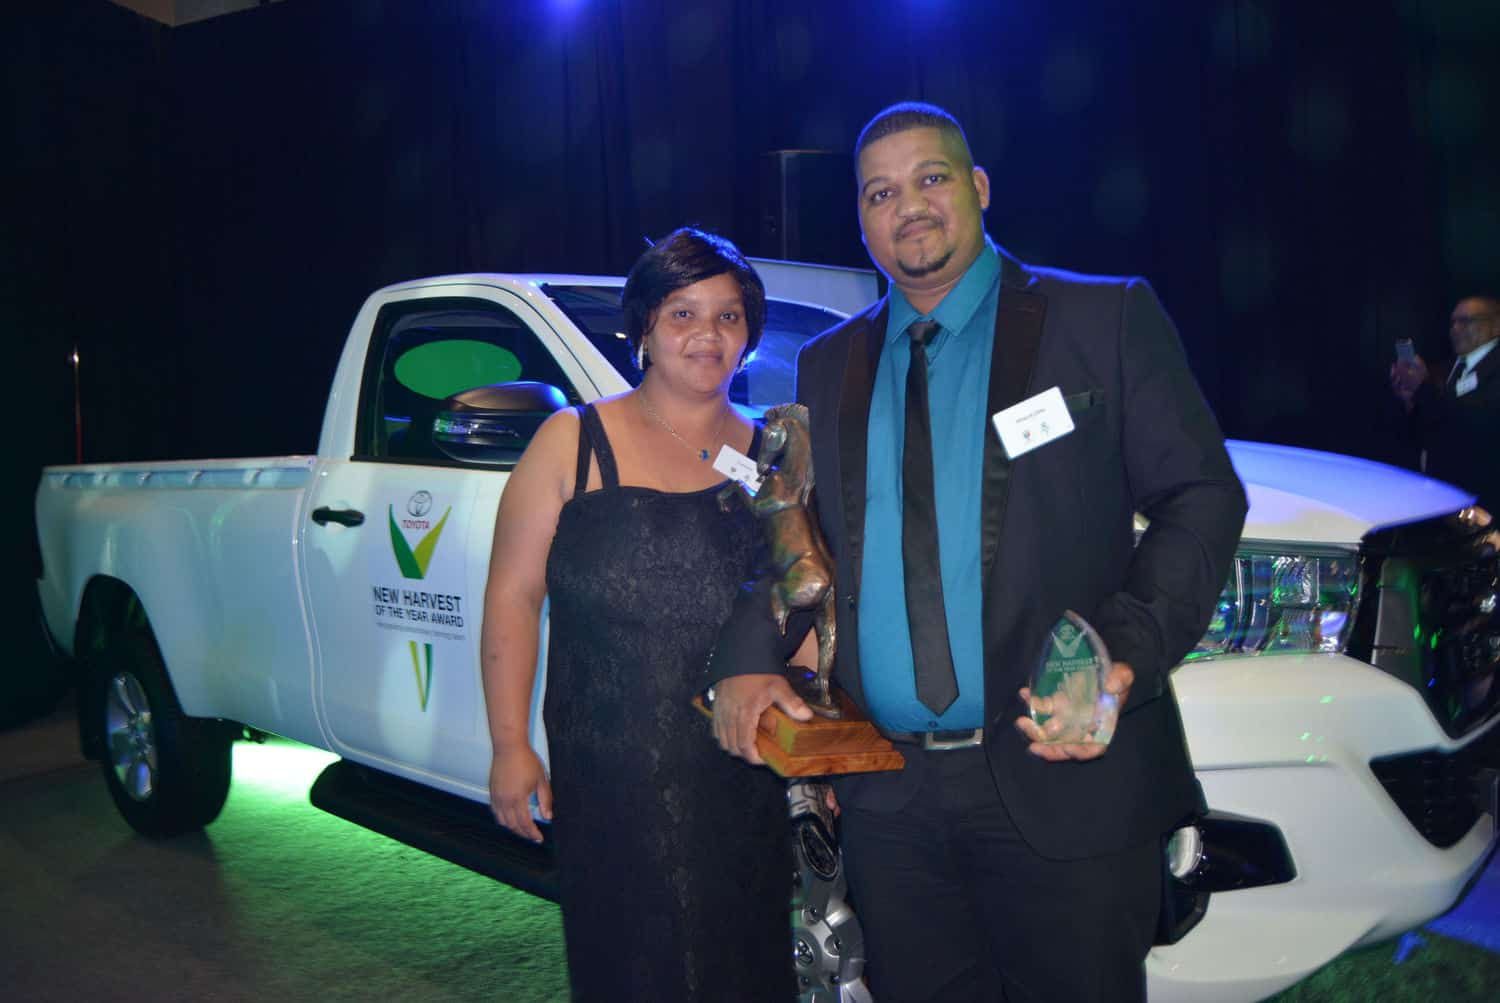 Whernit Dirks earlier won a new Toyota bakkie as part of the upcoming farmer of the year prize. He is pictured with his wife, Eva. Photo: Supplied/Food For Mzansi